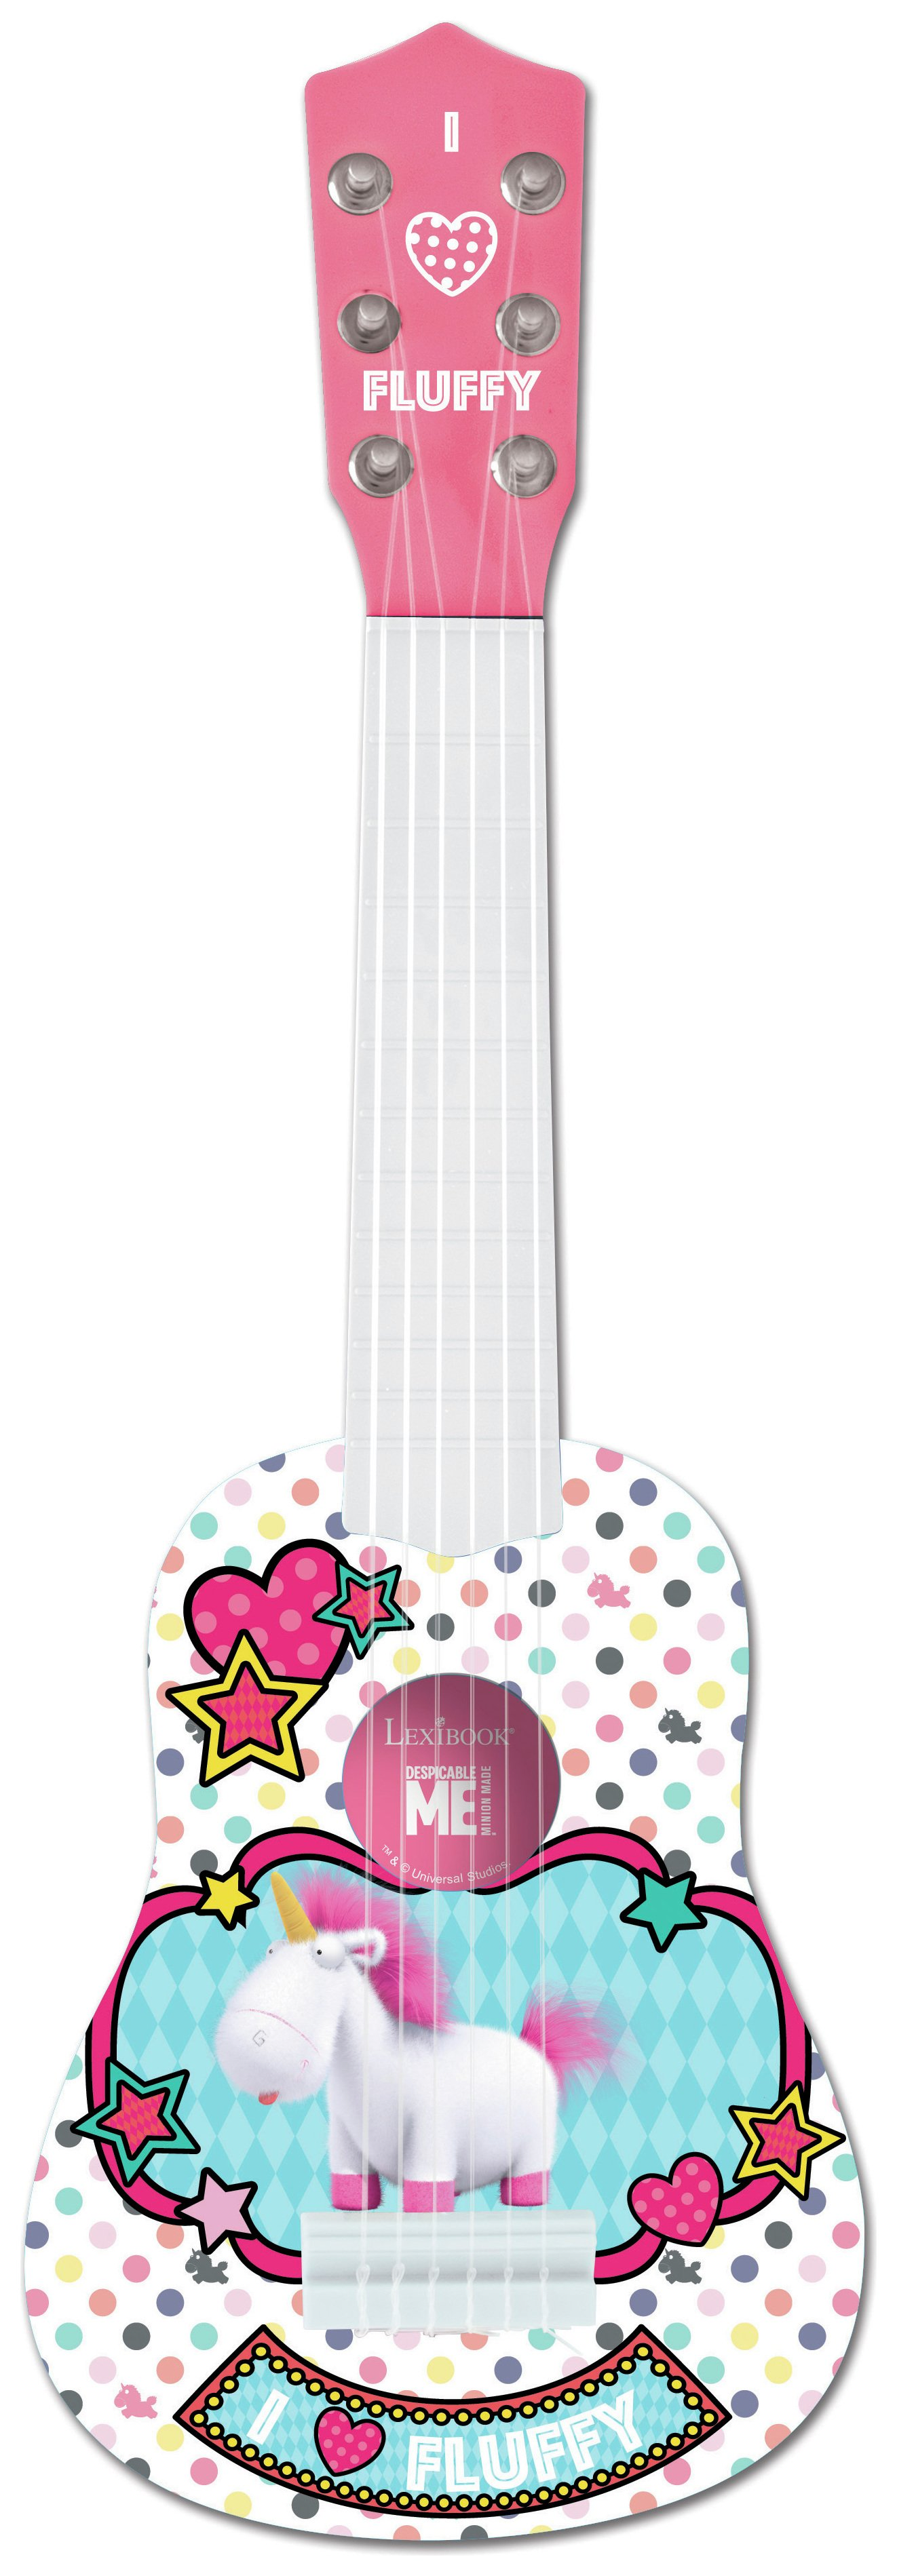 lexibook-despicable-me-fluffy-my-first-guitar